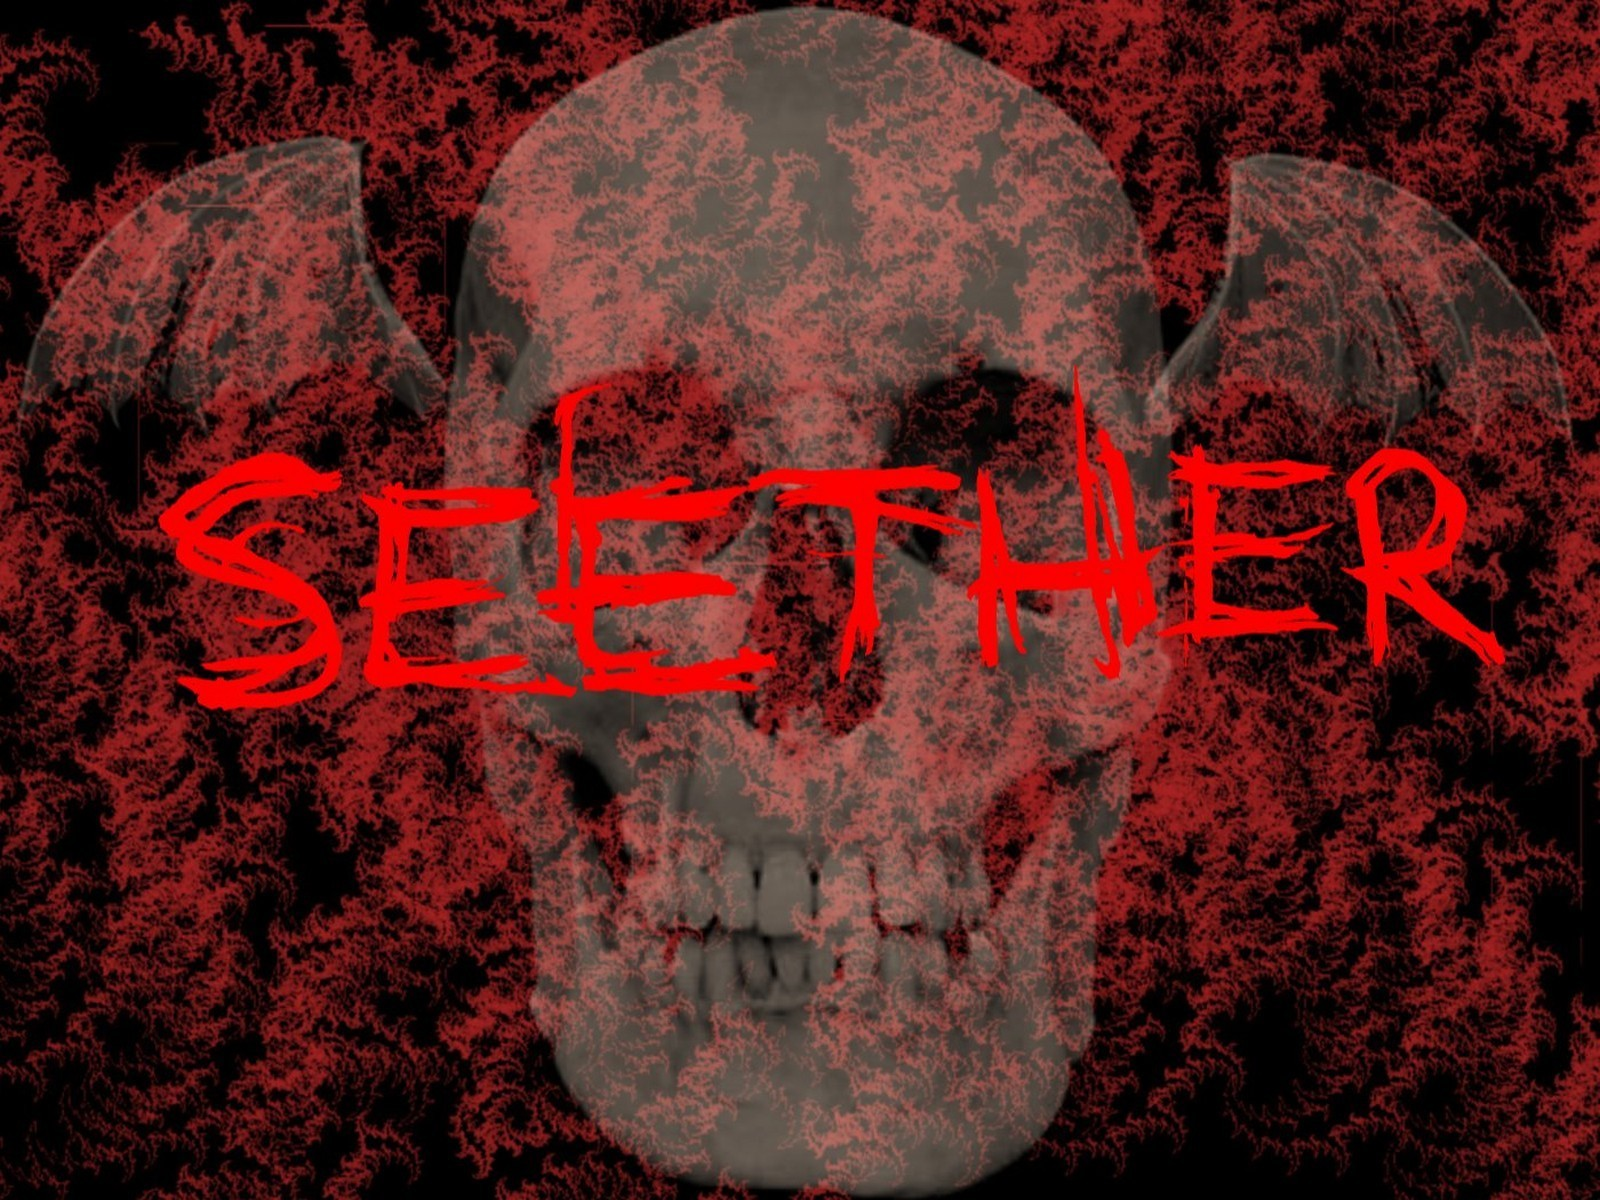 Seether Seether